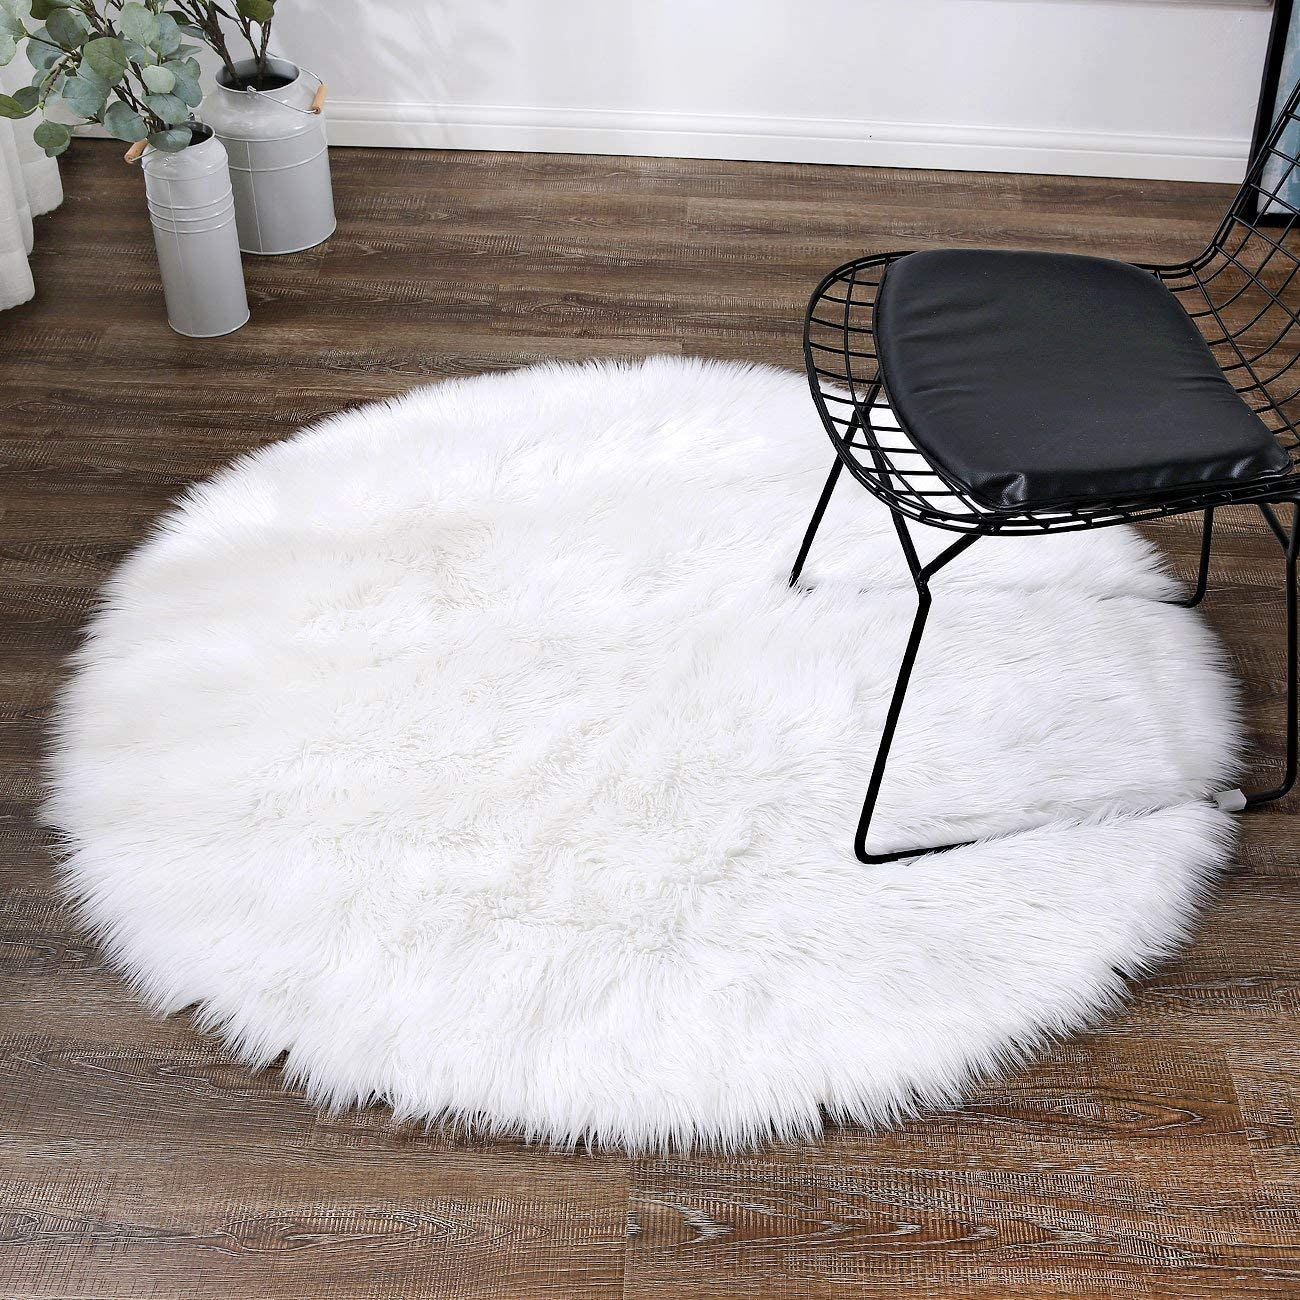 LEEVAN Plush Sheepskin Style Throw Round Rug Faux Fur Elegant Chic Style Cozy Shaggy Round Rug Floor Mat Area Rugs Home Decorator Super Soft Carpets Kids Play Rug 6 ft-Diameter, White